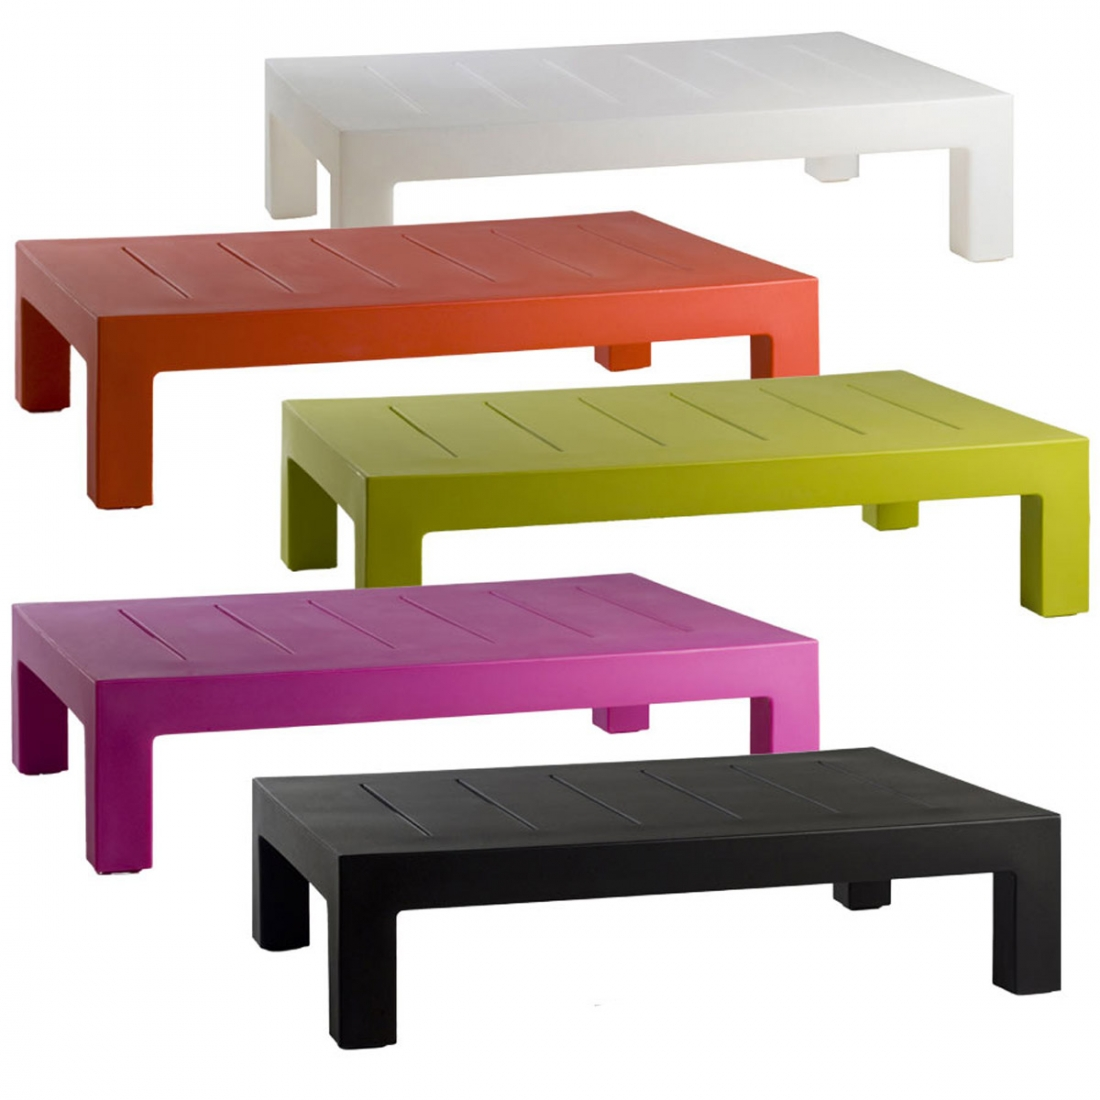 Table basse design d ext rieur jut par vondom for Table exterieur de couleur